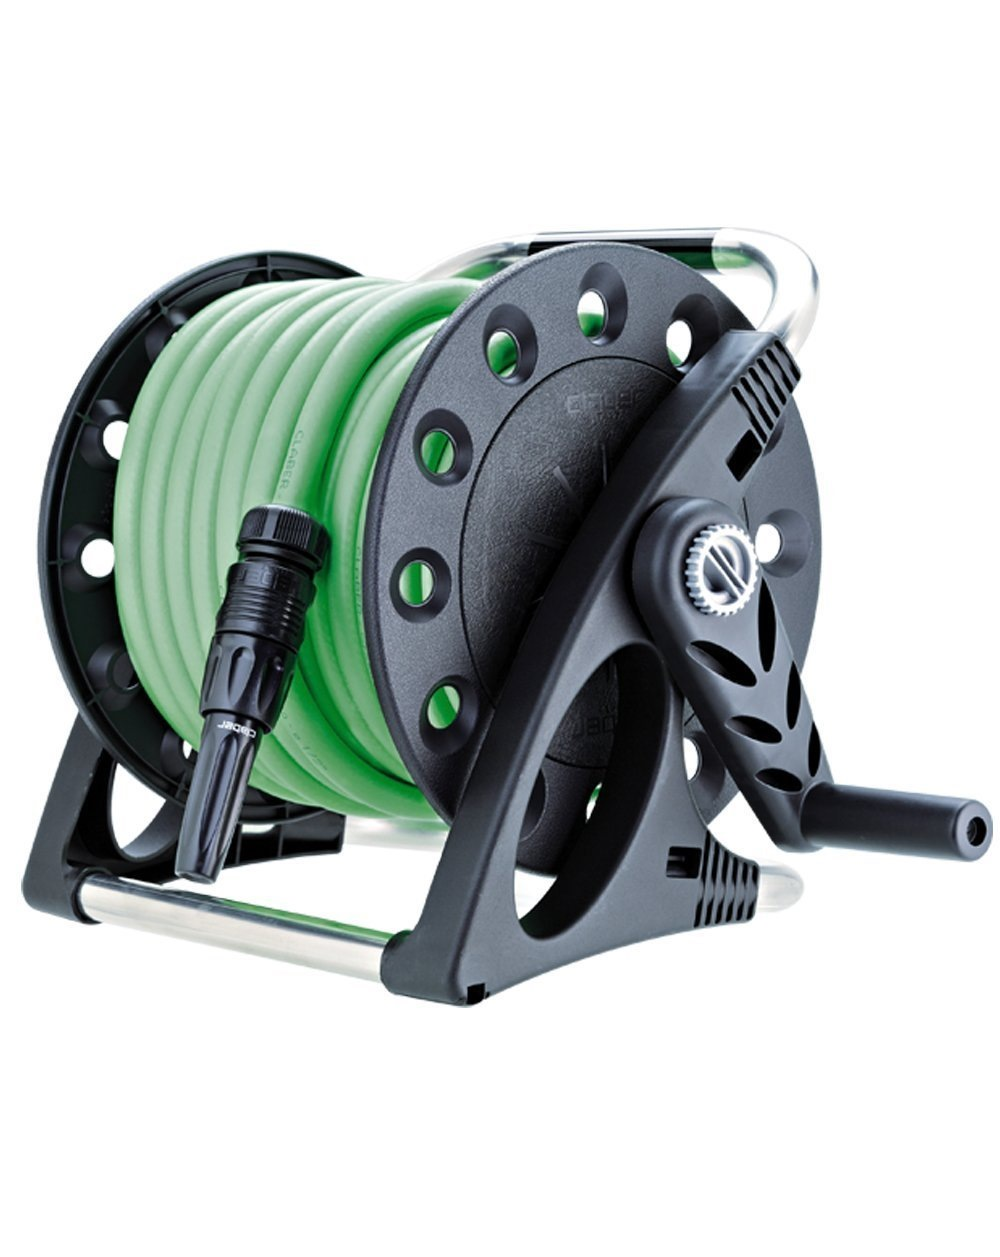 hover strongway hose garden zoom perpendicular to over parallel or mount tools product shop reels image wall reel